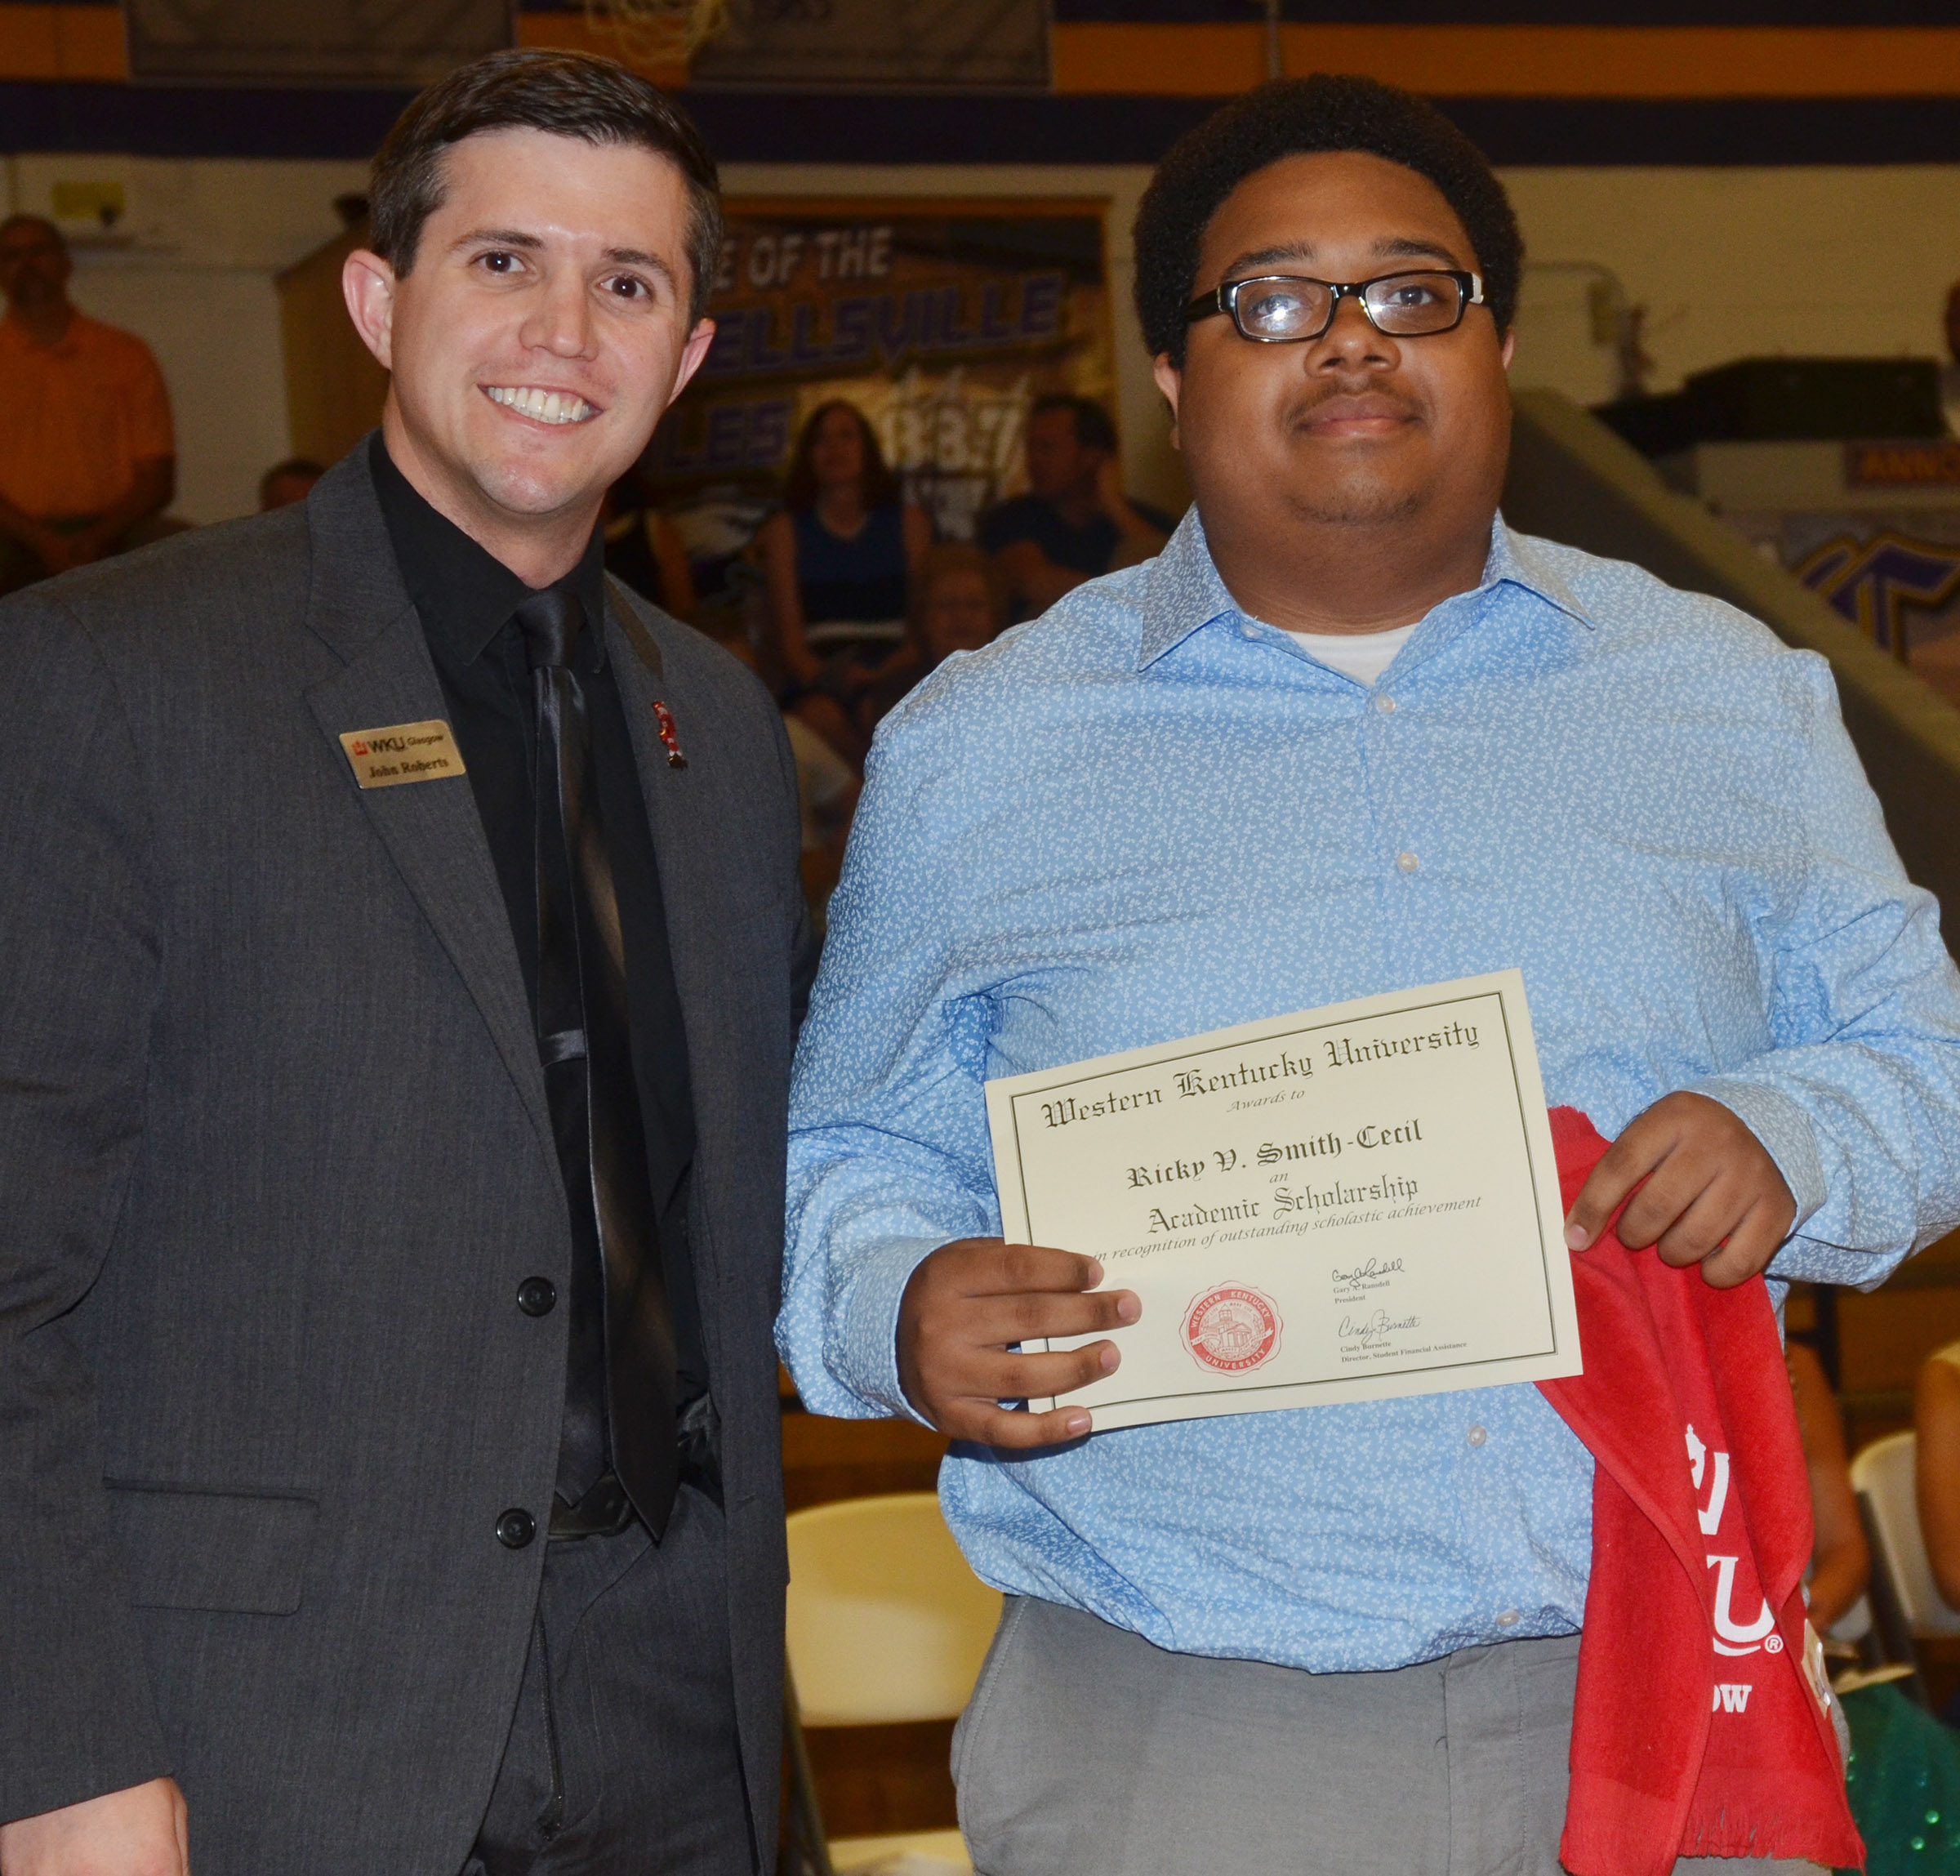 Ricky Smith-Cecil receives a scholarship from Western Kentucky University admissions counselor John Roberts.